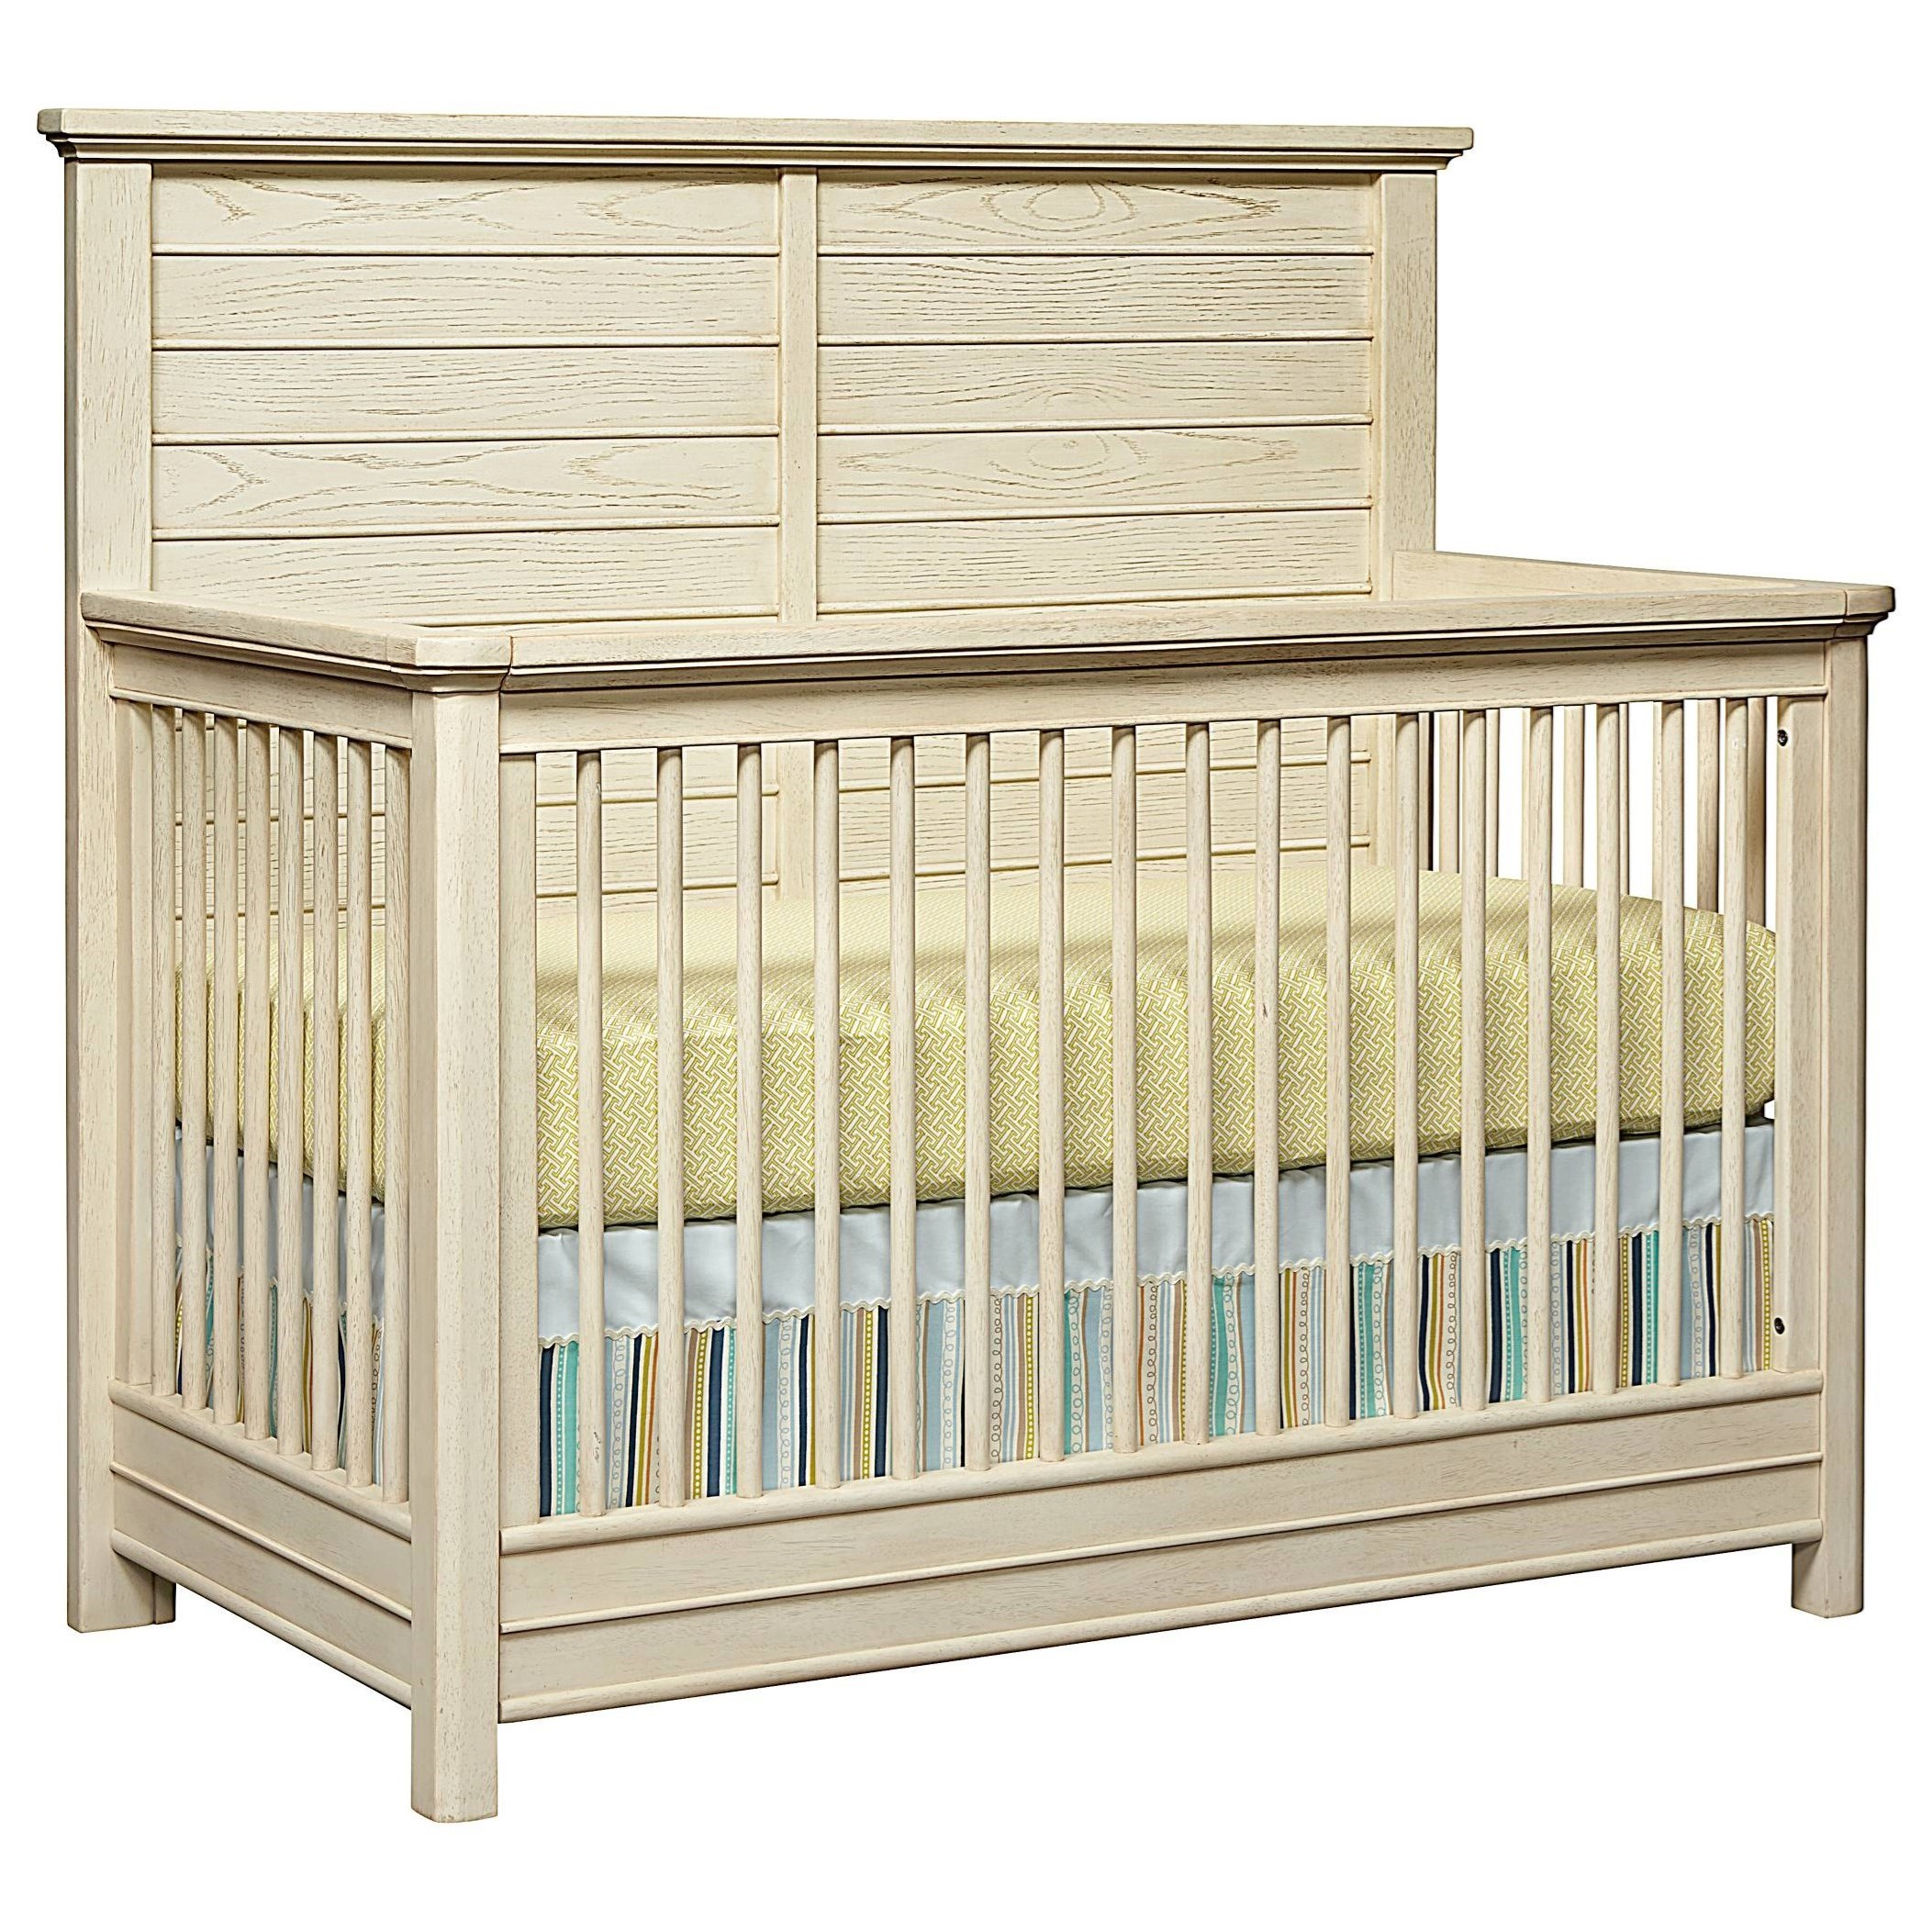 Driftwood Park Built To Grow Crib by Stone & Leigh Furniture at Alison Craig Home Furnishings